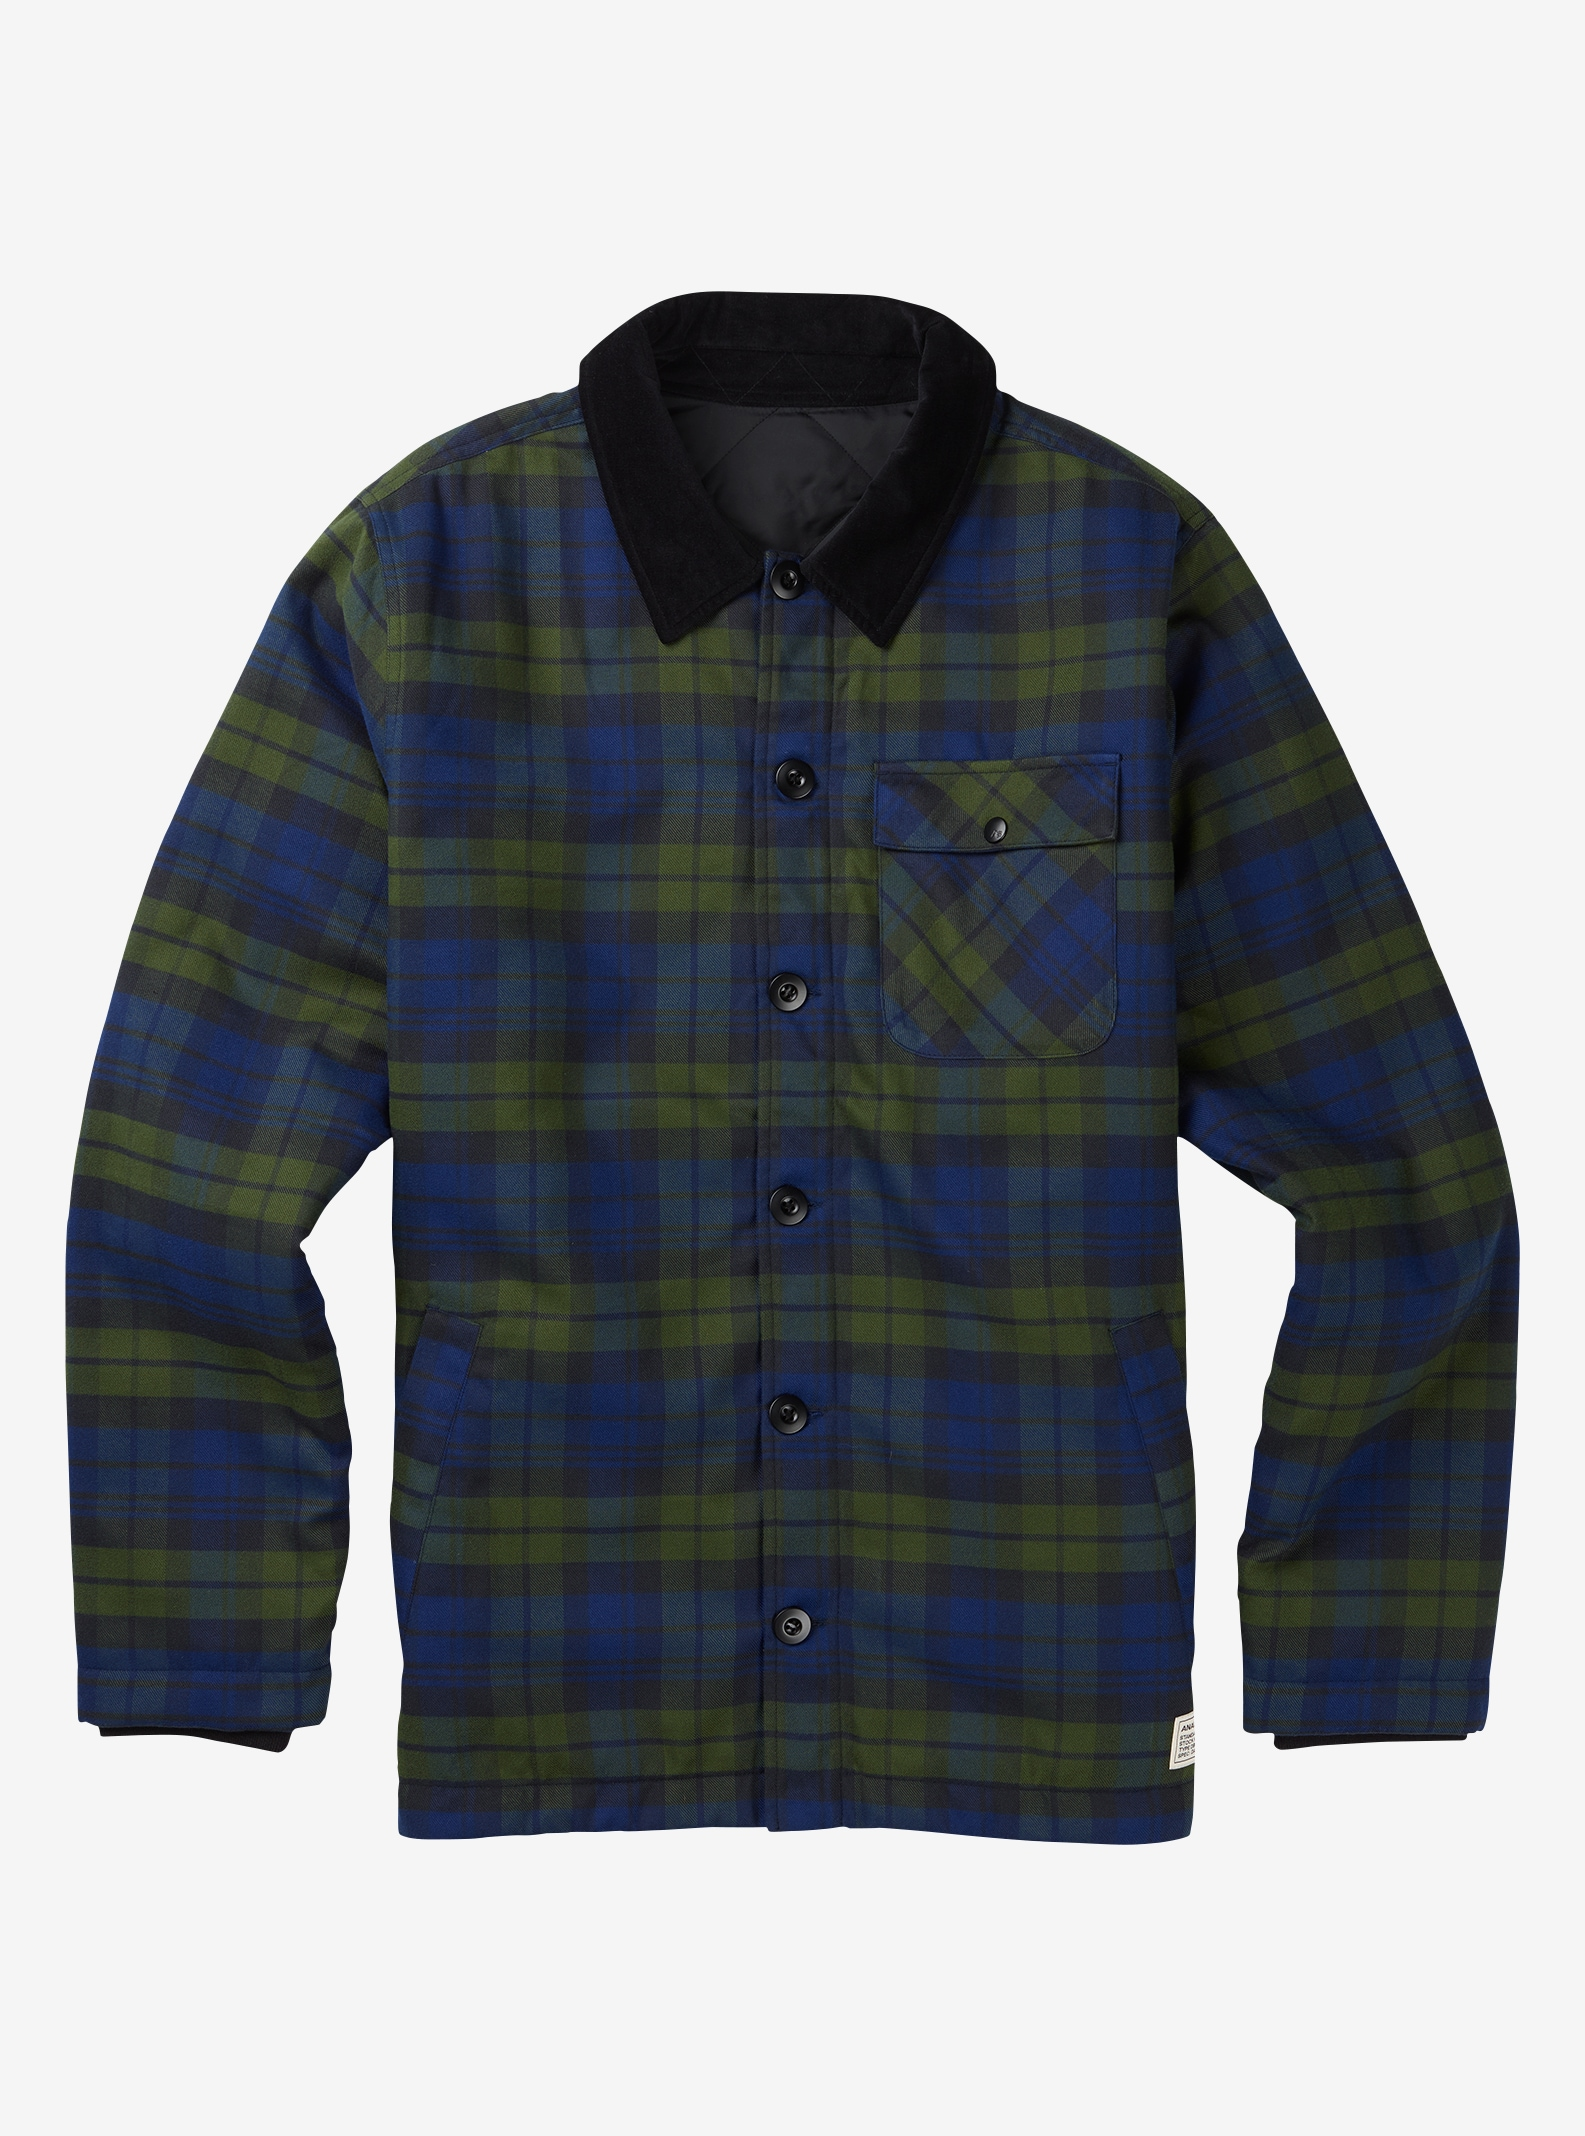 Men's Analog ATF Daily Driver shown in Deflate Gate Union Plaid